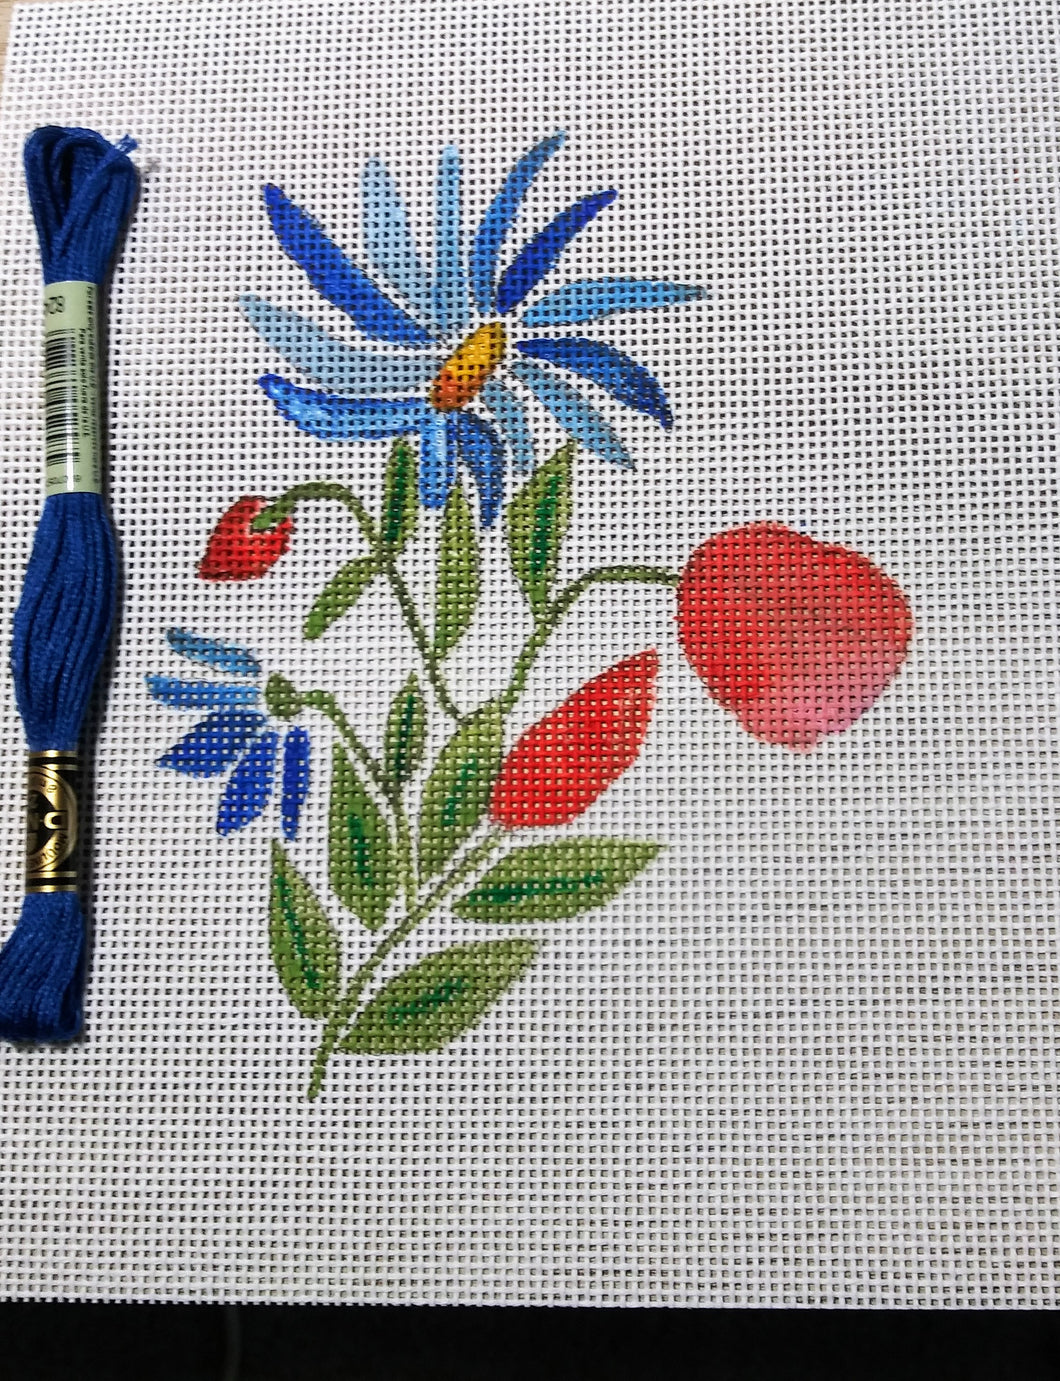 Blue Daisies- Handpainted Needlepoint Canvas